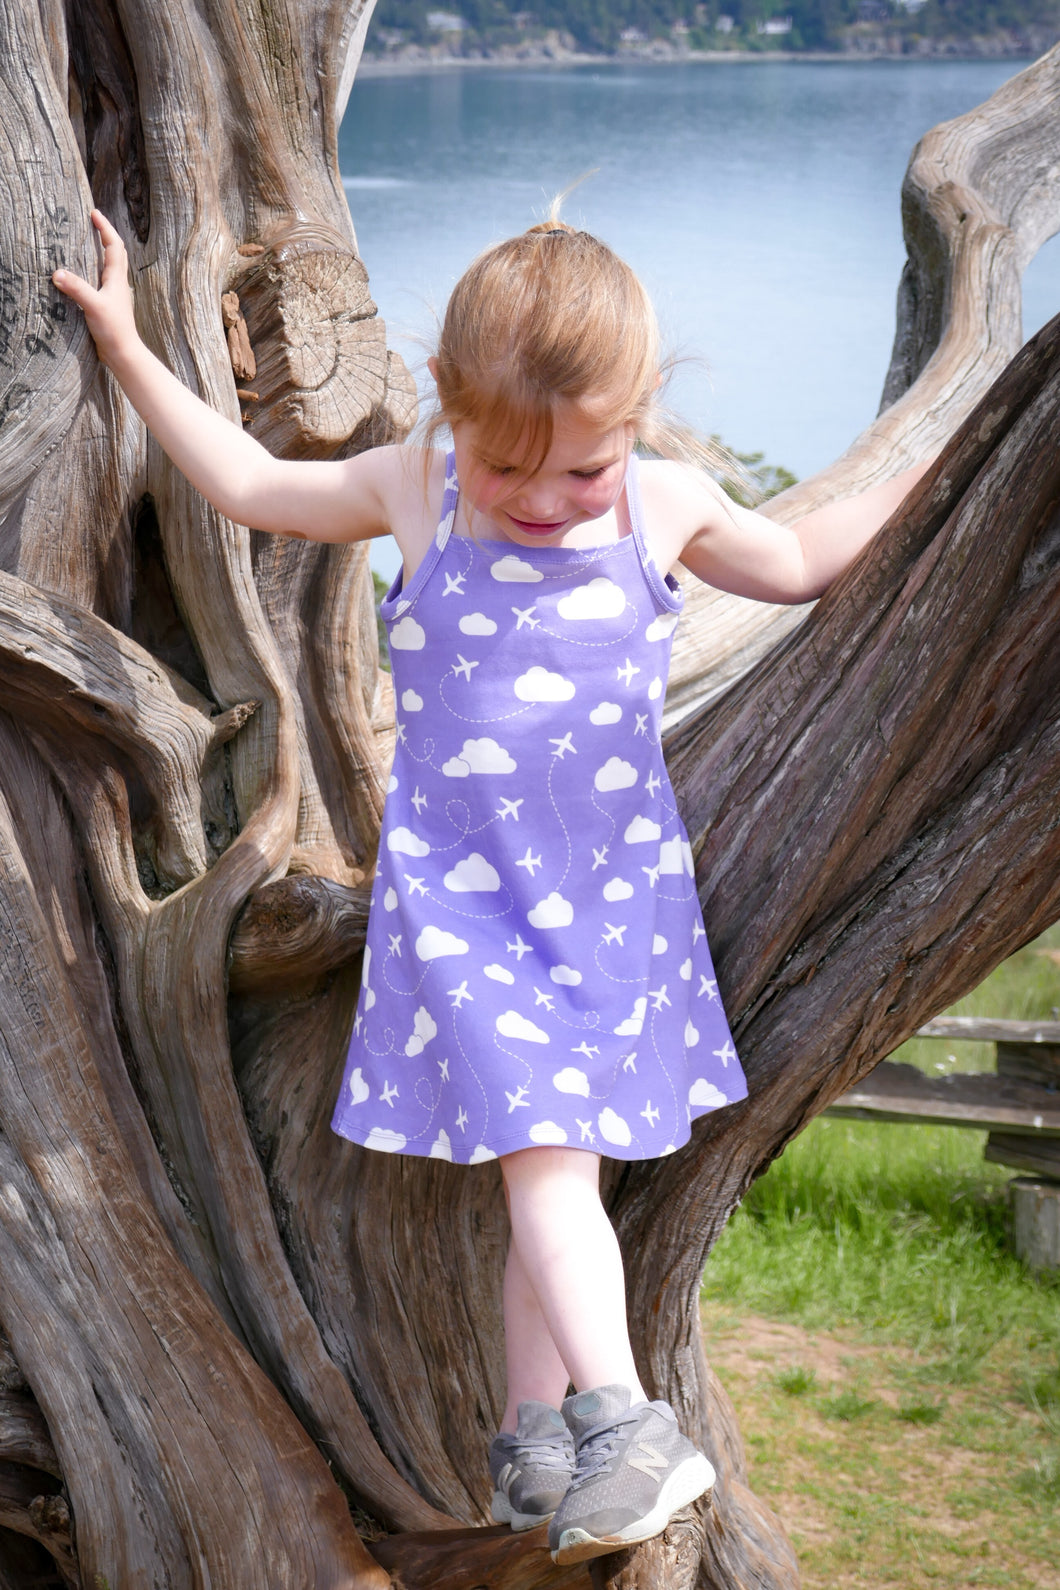 Jets in Clouds Sun Dress - White / Purple - CAVU Creations